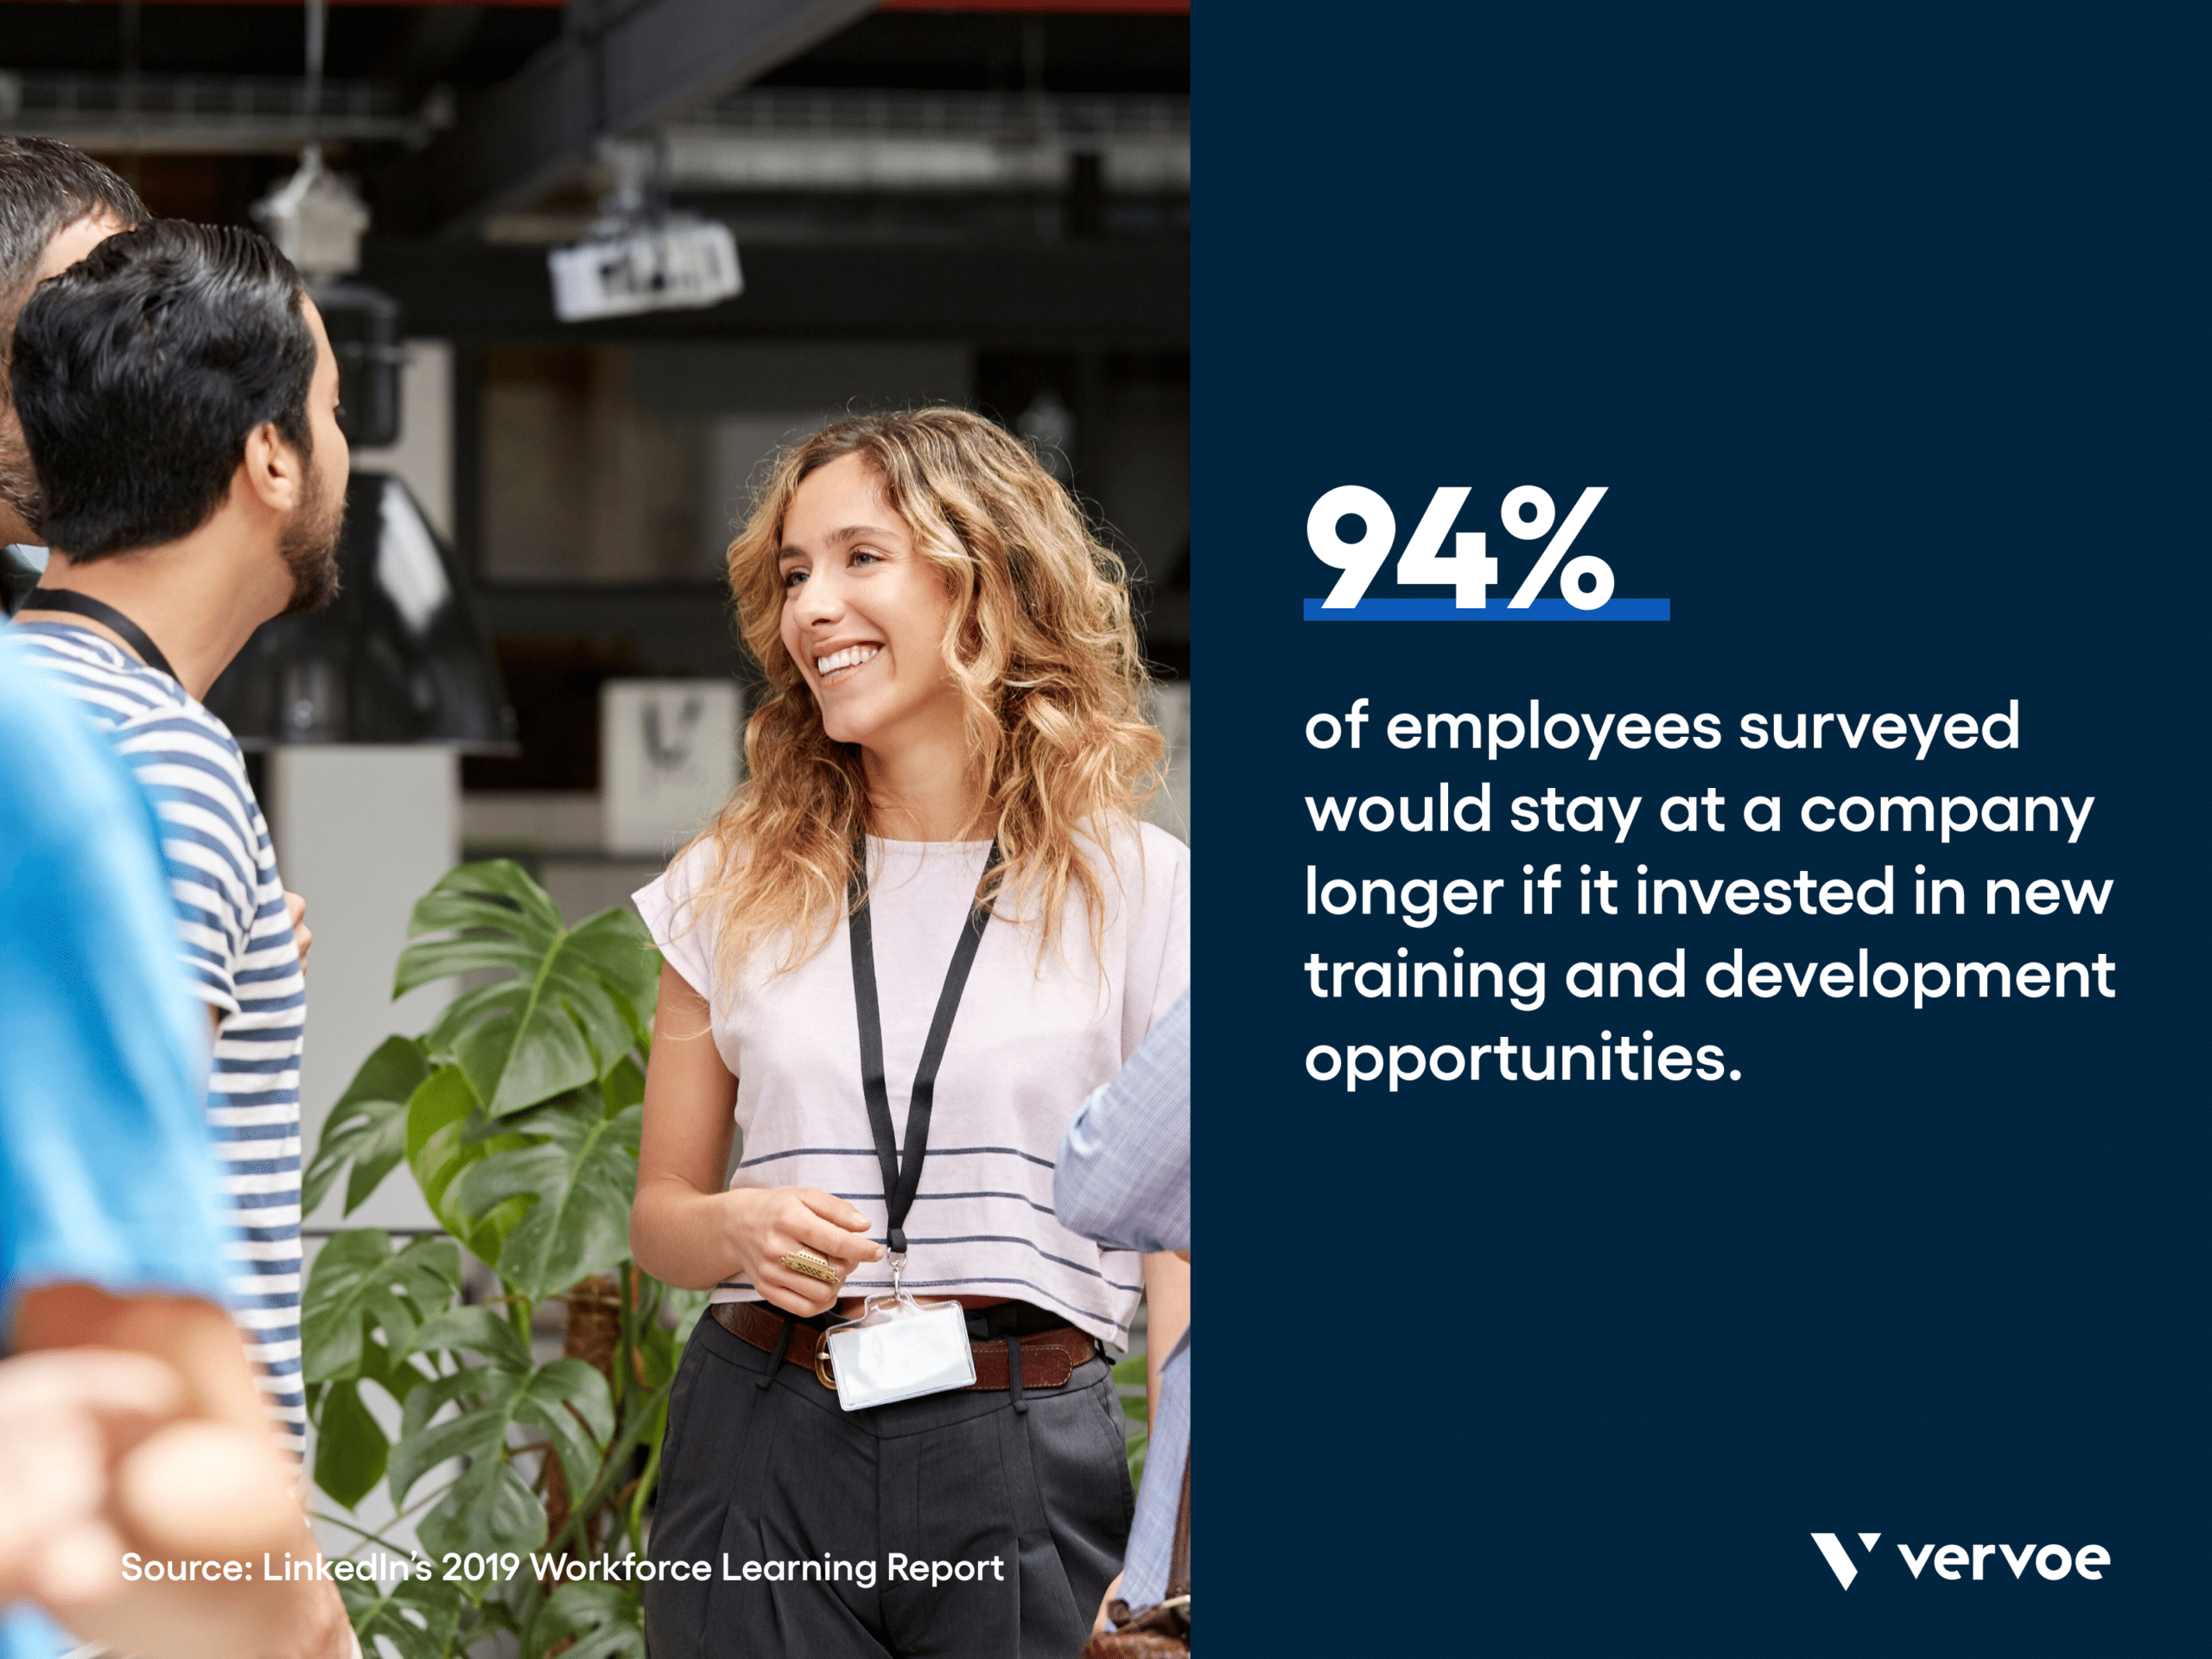 Infographic showing 94% of employees would stay longer at companies investing in new training and development